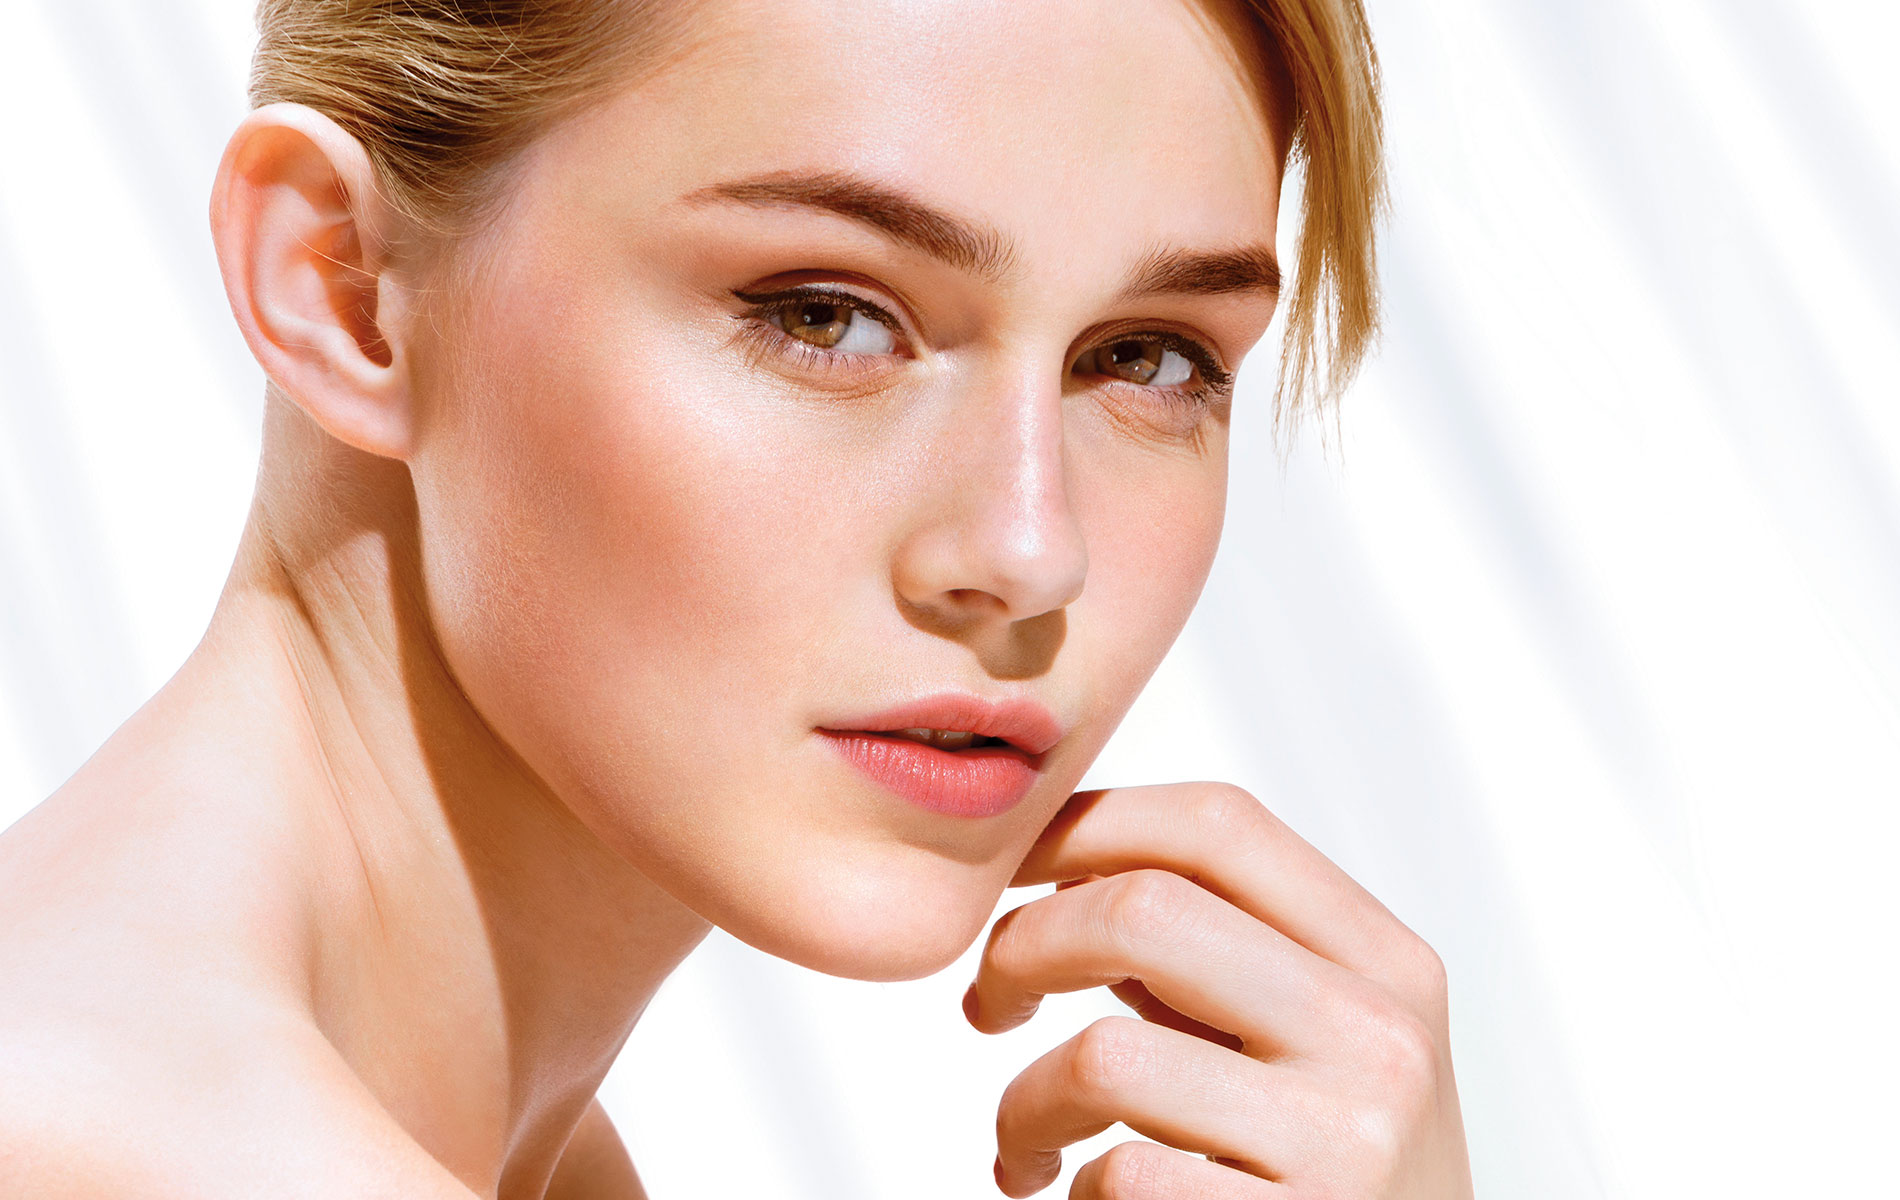 Young woman with beautiful healthy glowing skin Aesthetic Clinique VIE magazine